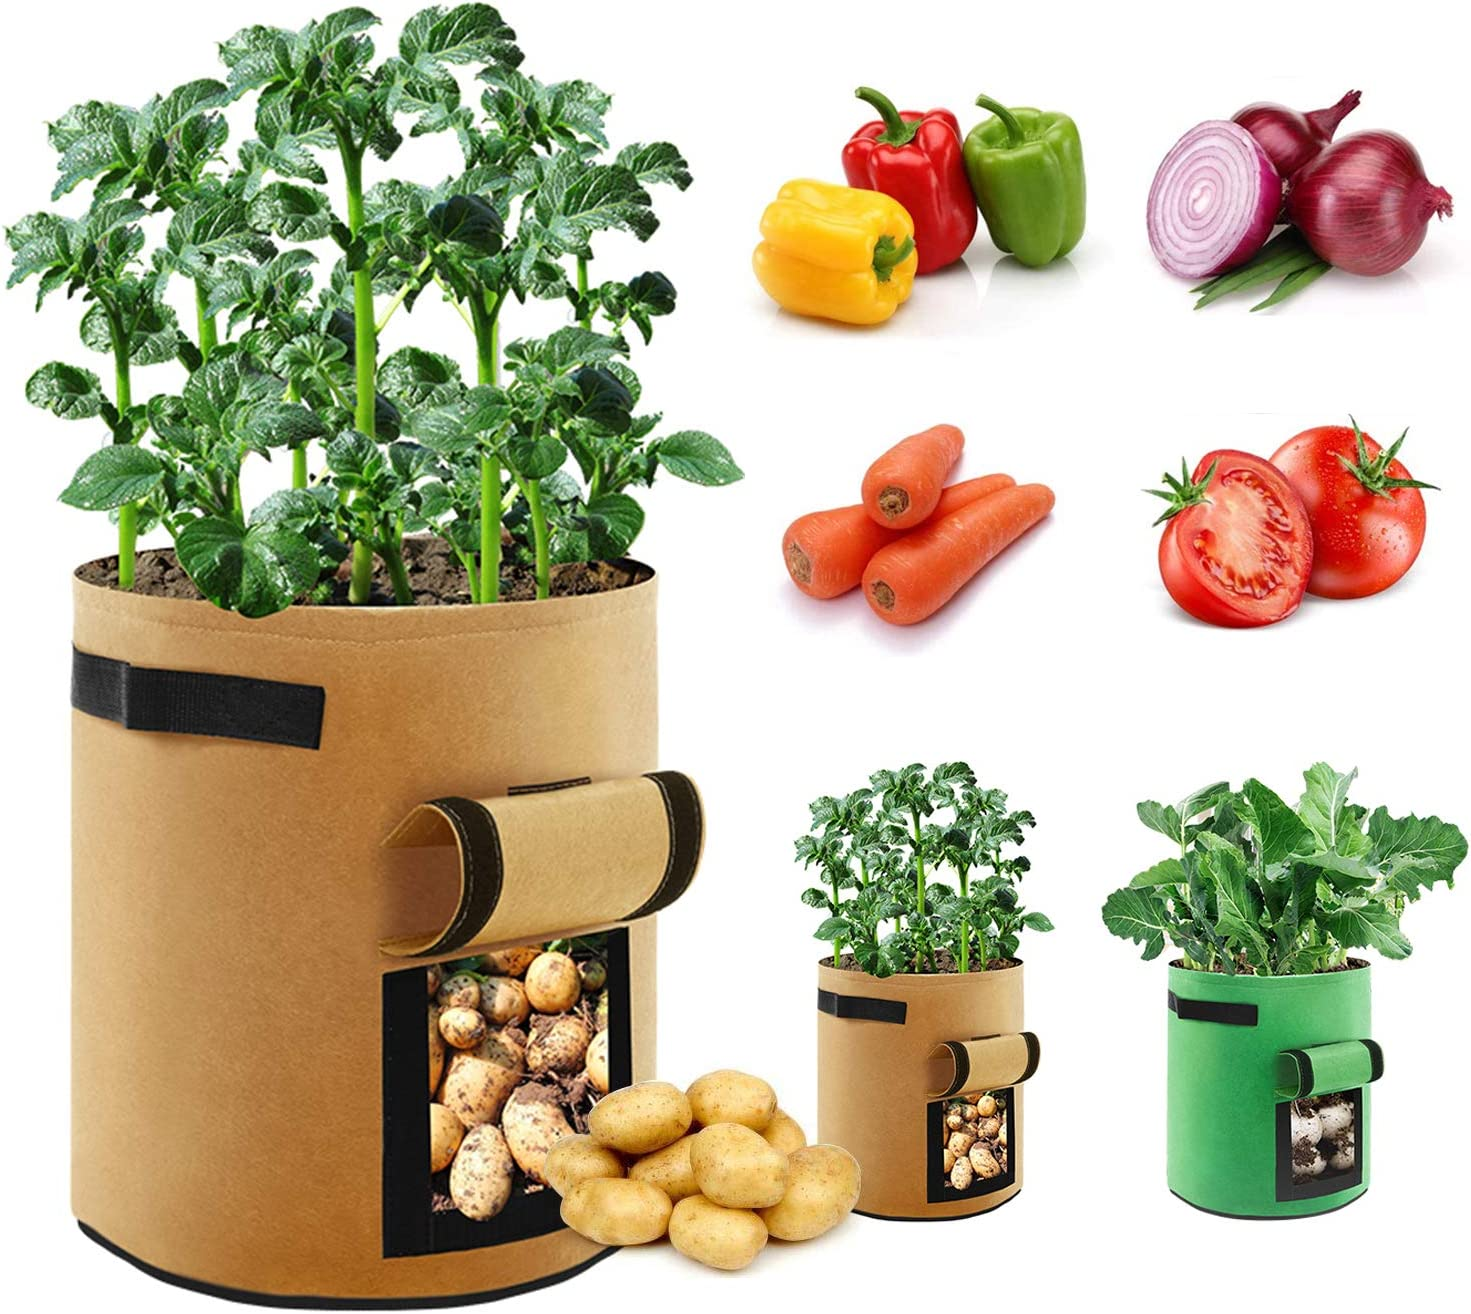 King&Charles 2 Pack 10 Gallon Garden Planting Grow Bags for Potato Tomato and Other Vegetables Grow Bags,Plant Container with Handles and Visualization Garden Bag Vegetable Growing Bags